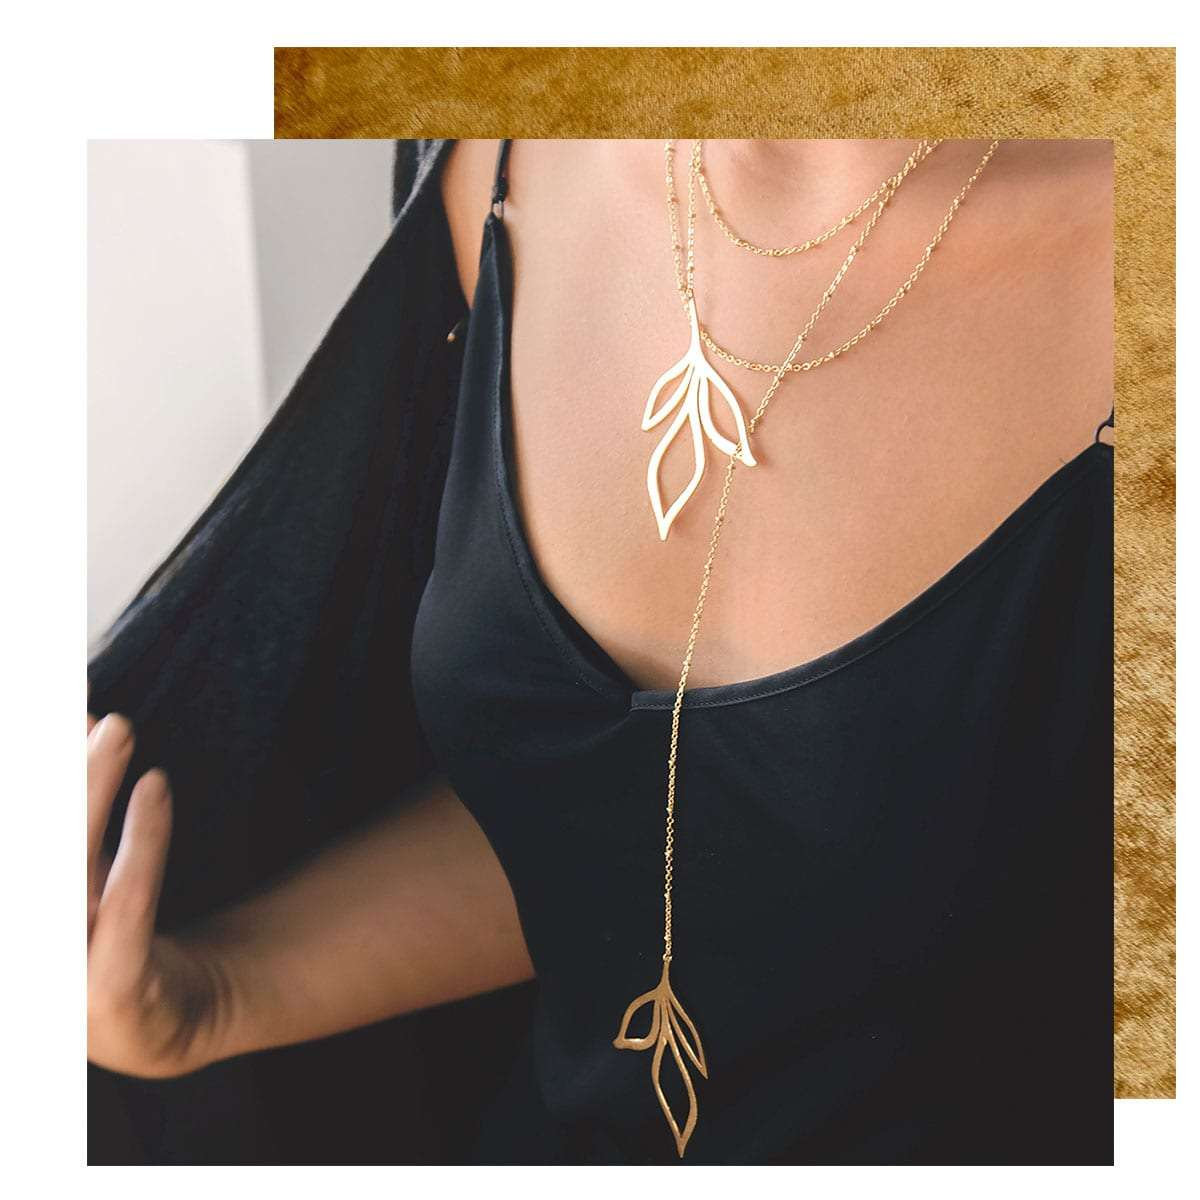 Broken Branch Necklace, Atelier Petites Pierres